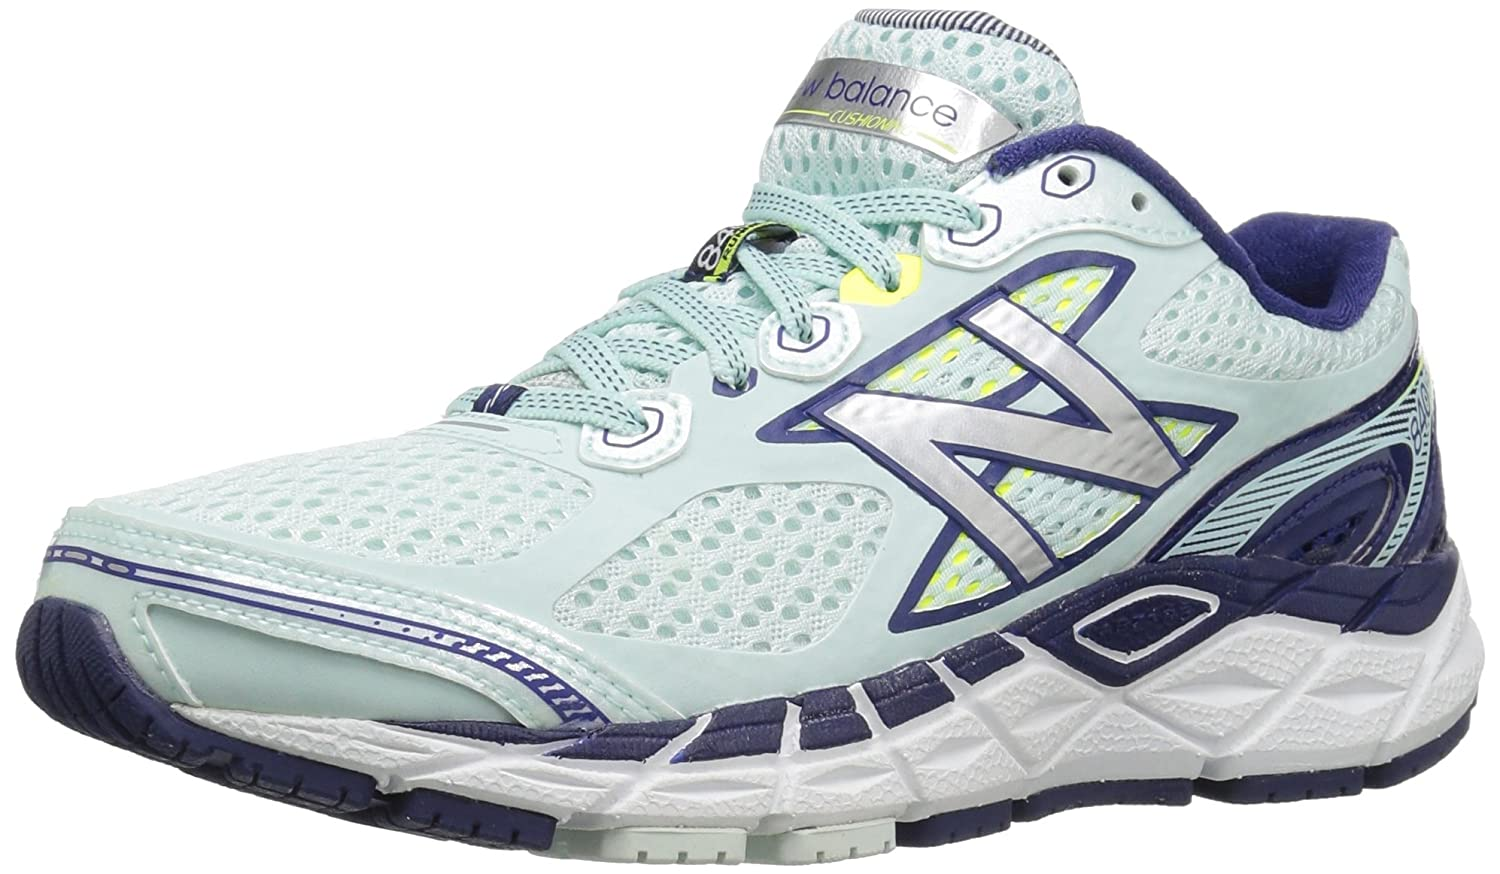 New Balance Women's W840V3 Running Shoe B01CQVCFSK 7 B(M) US|Droplet